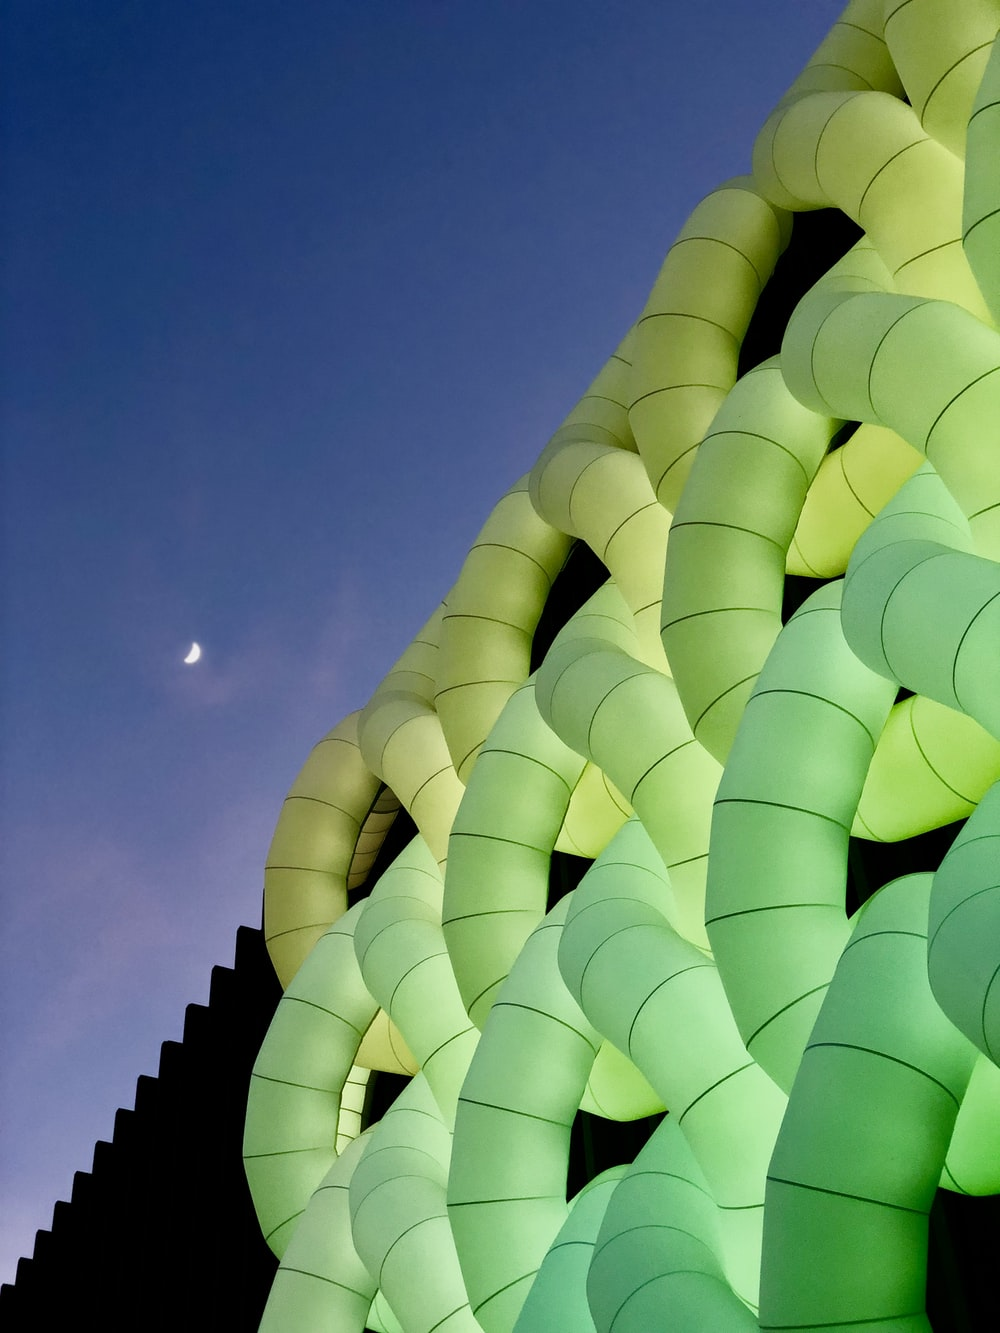 green and yellow inflatable decor under blue skies